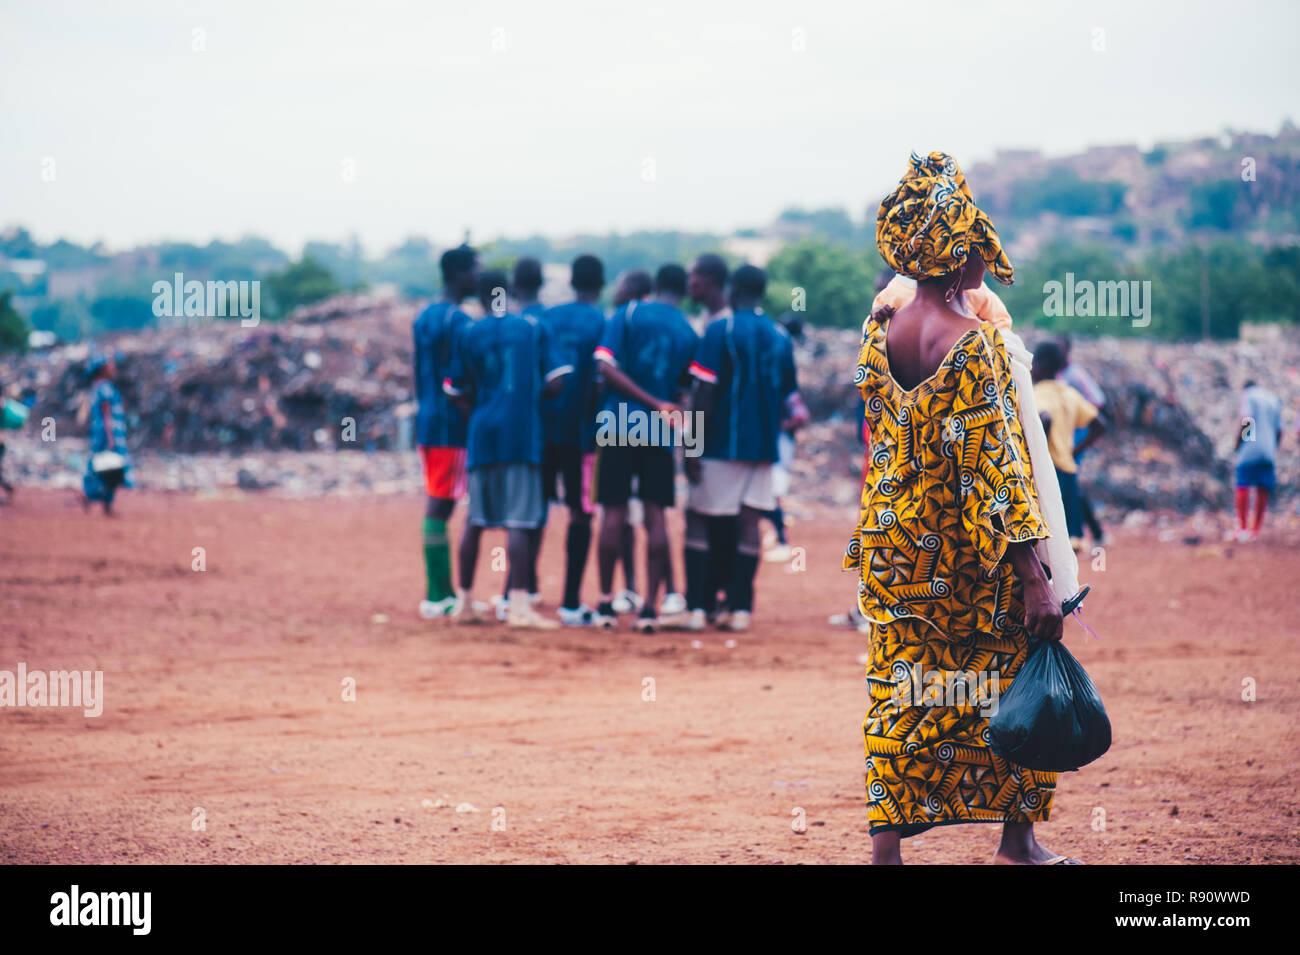 Mali Africa Black African Children Playing Soccer In A Rubbish Dump With Their Parents Crossing The Game Field Rural Area Near Bamako Stock Photo Alamy